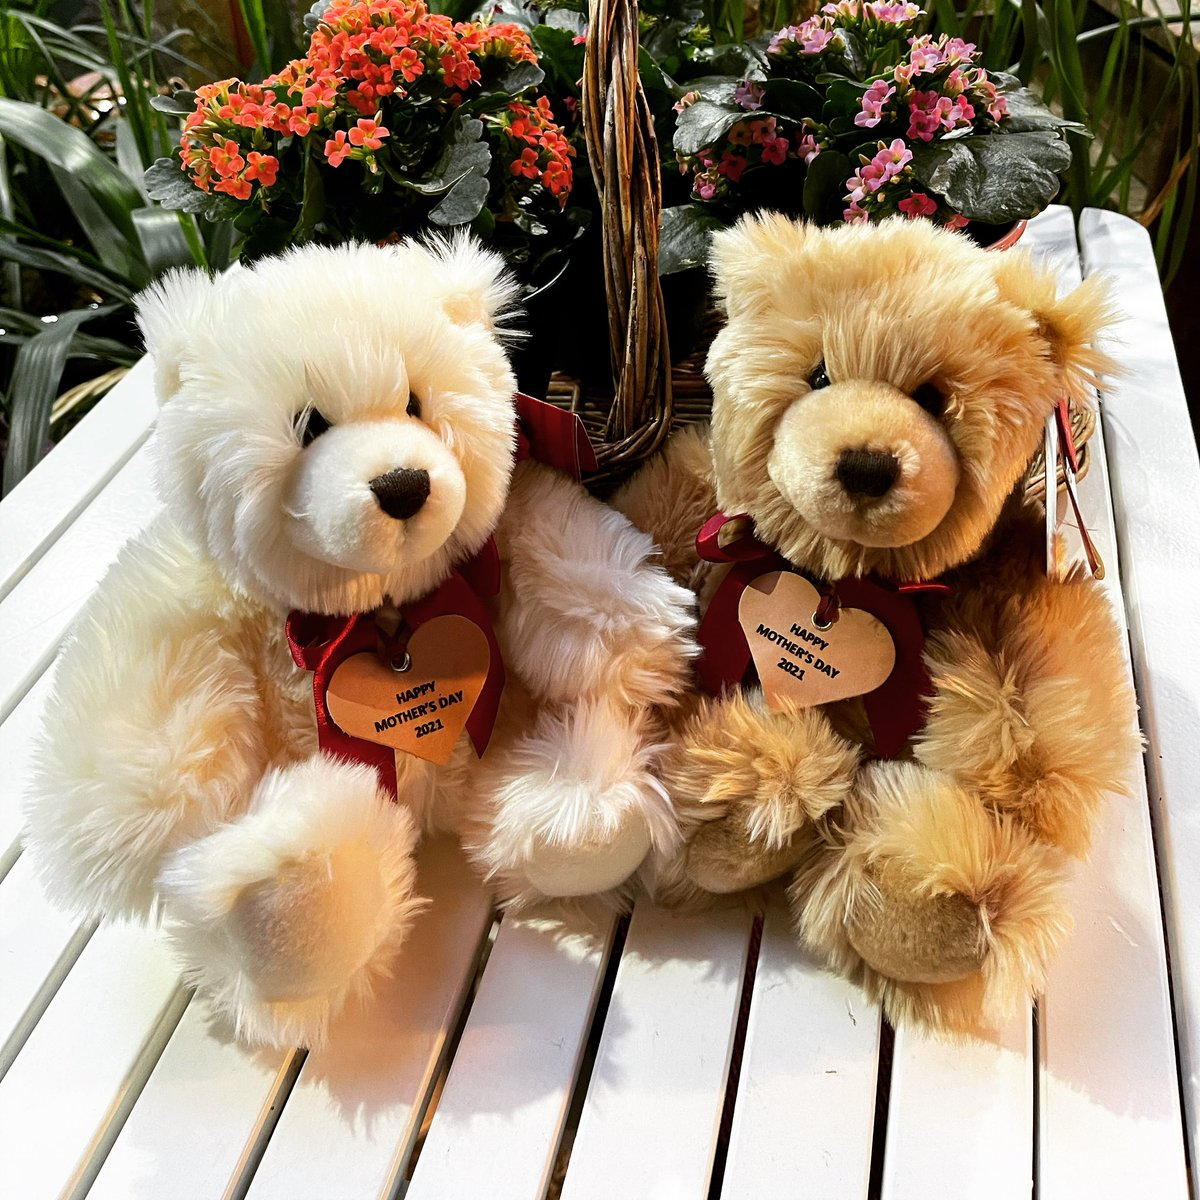 """Happy Mother's Day"" Teddy Bears for mum to enjoy. A great way to receive a hug this year. 🤗 #mothersday #mothersdayteddy #happymothersday #mothersdaygift #wednesdaywisdom #bearessentialsireland #teddybear #specialgifts #personalisedgifts"